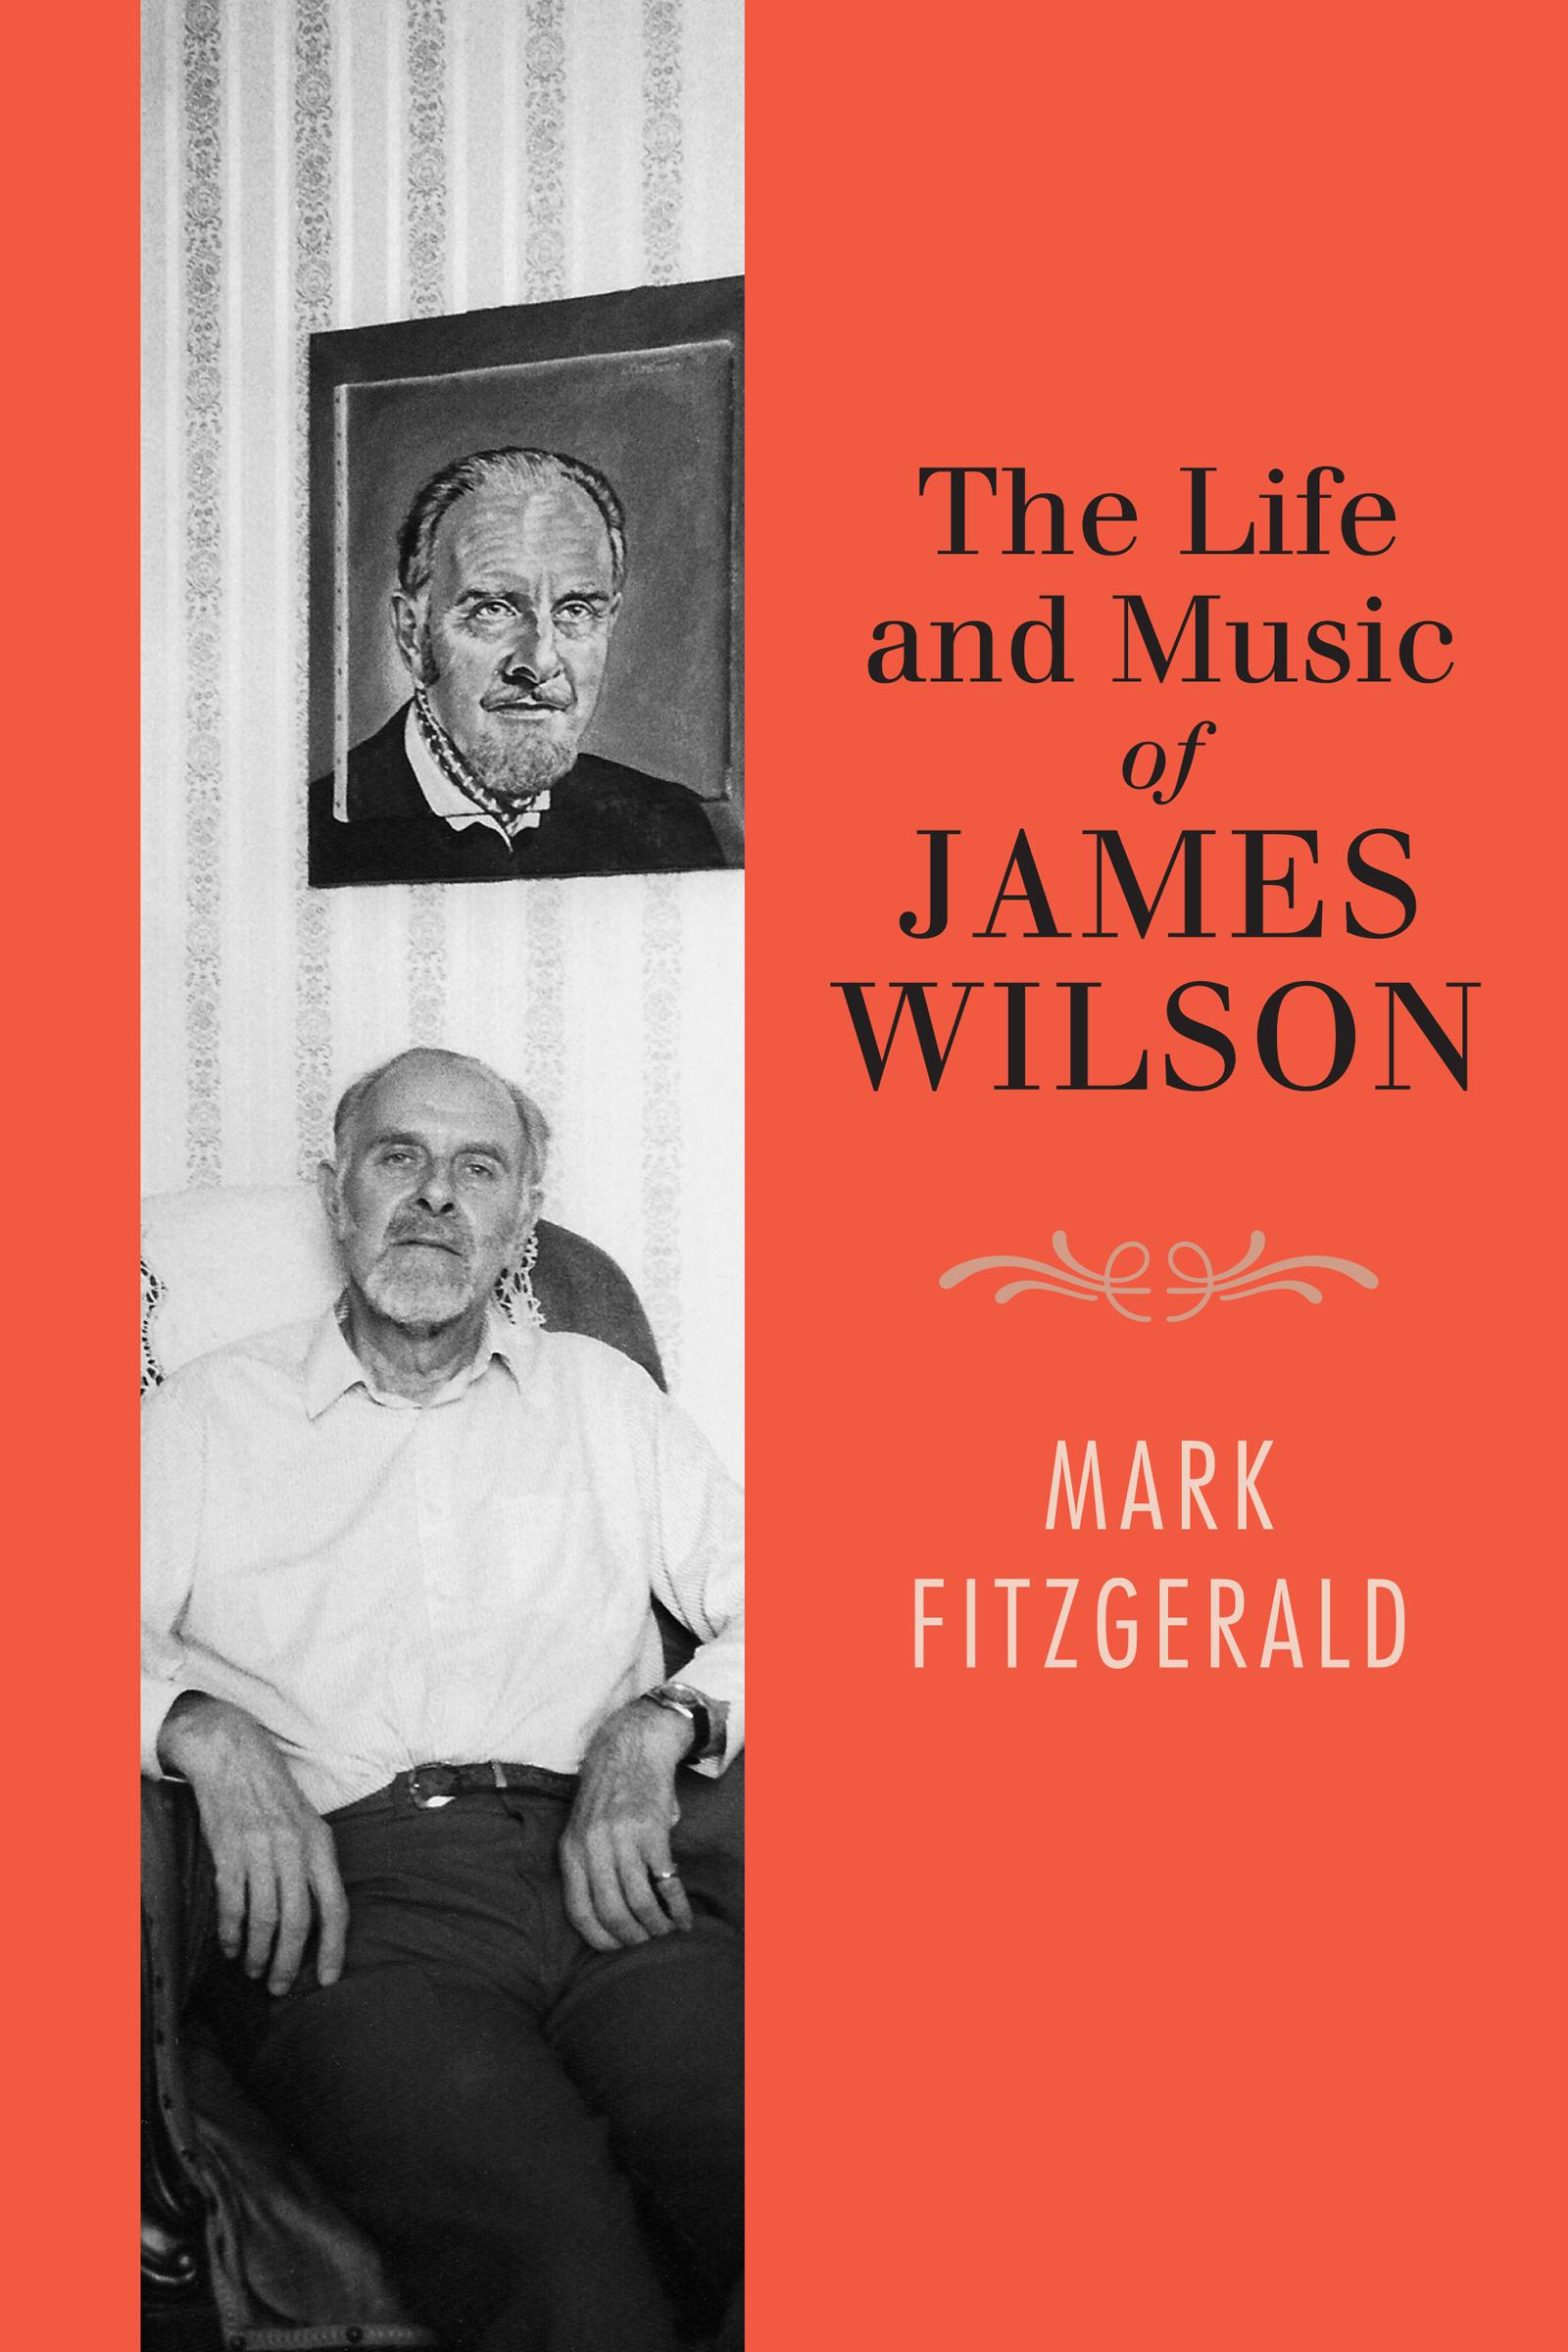 The Life and Music of James Wilson by Cork University Press